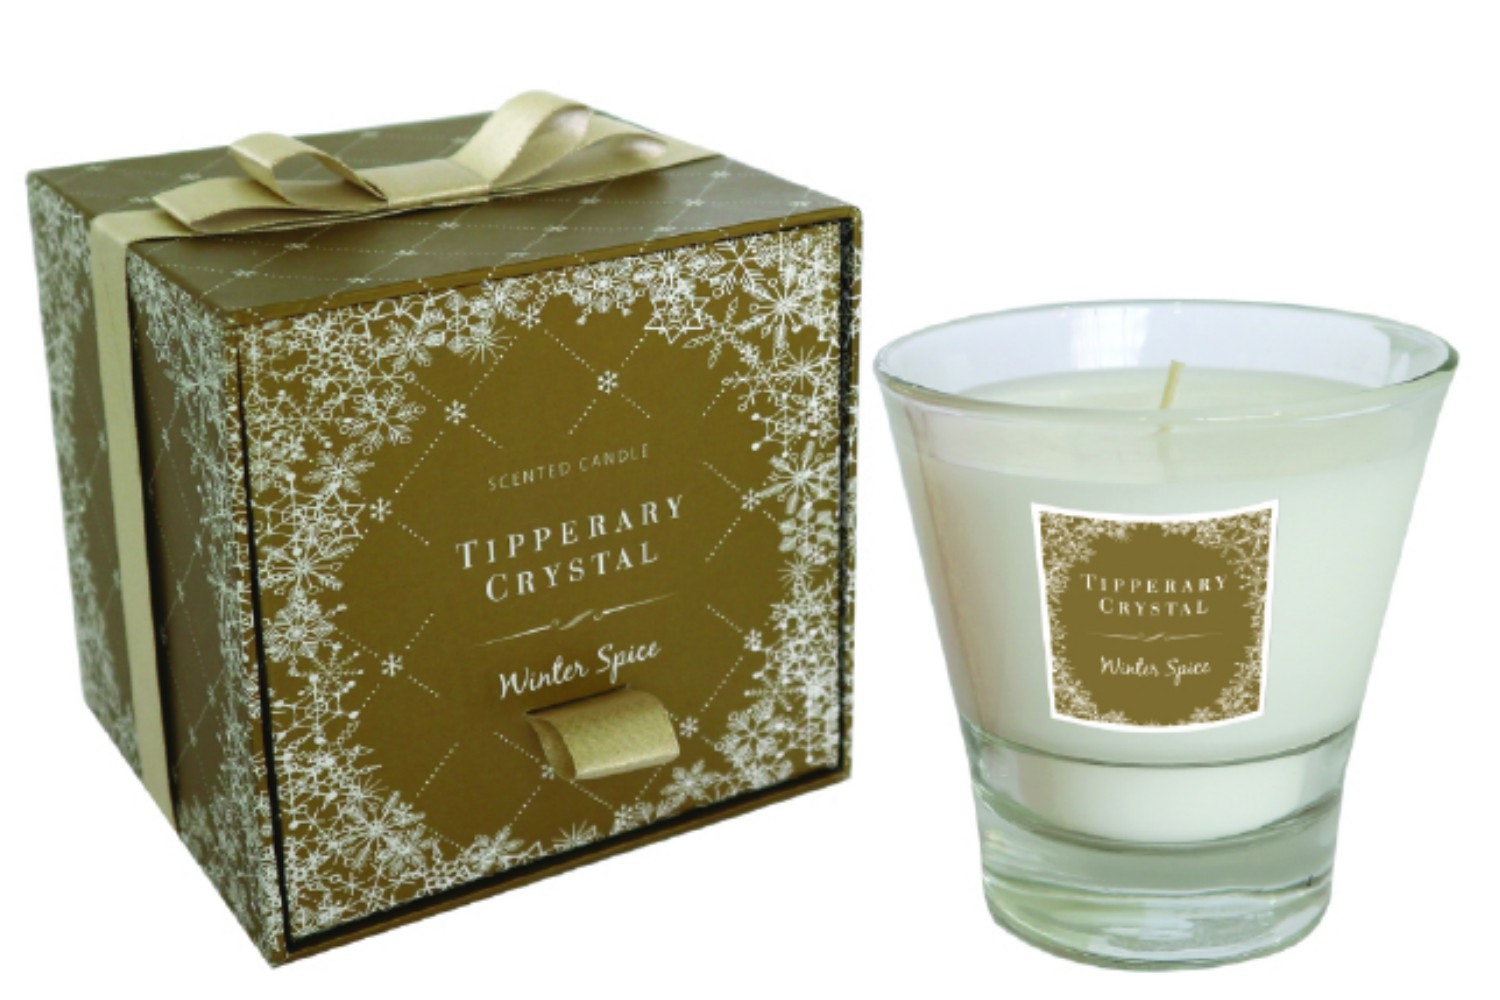 Tipperary Crystal Winter Spice Filled Tumbler Candle